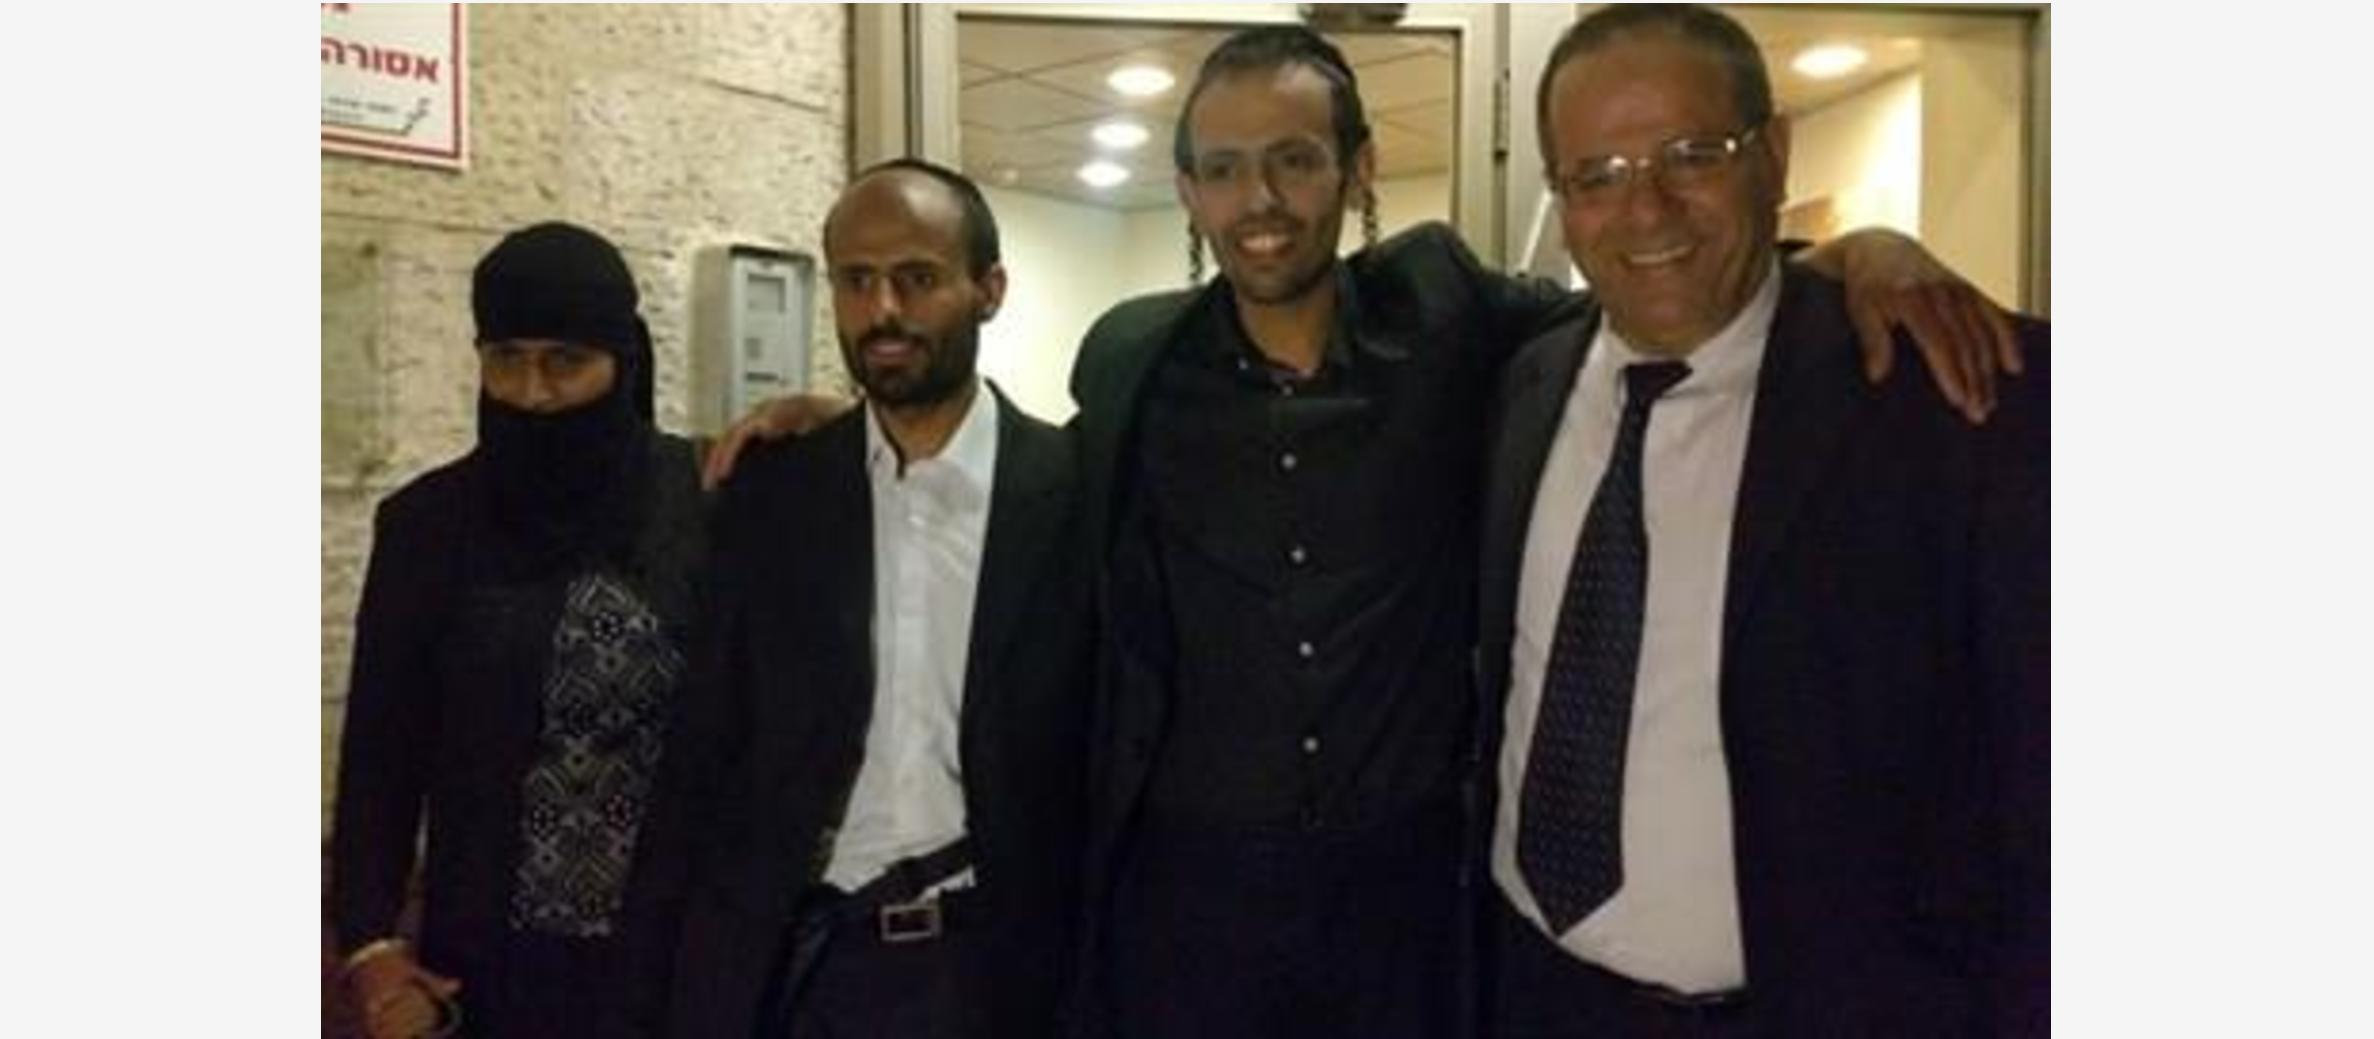 Secret mission rescues last group of Yemen Jews